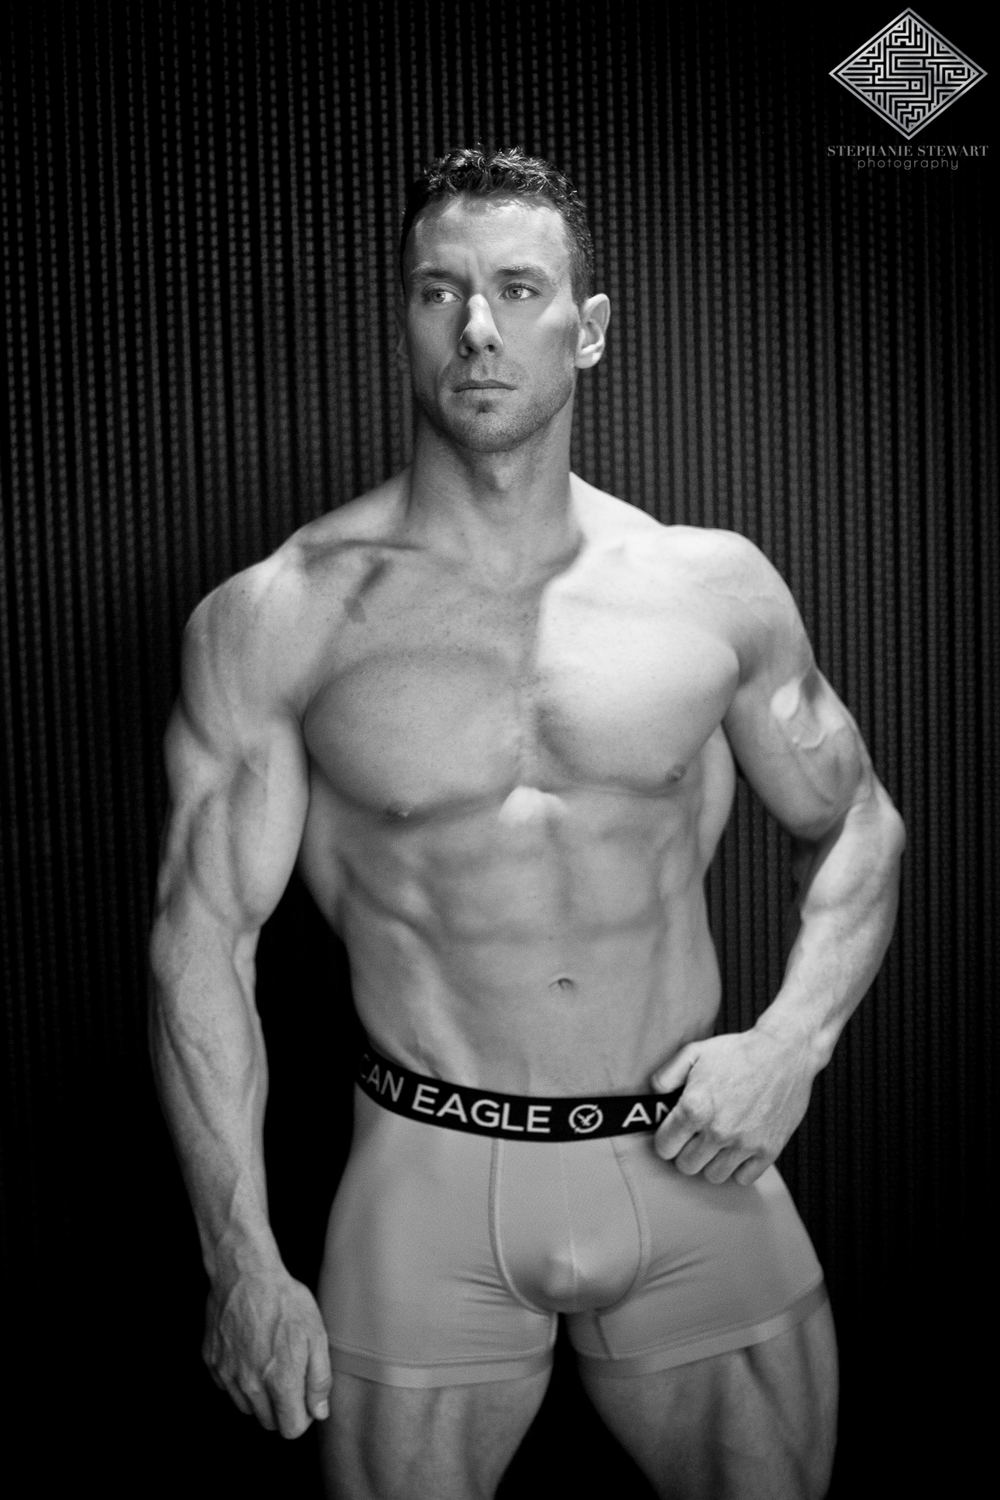 Mens-Fitness-Physique-BodyBuilding-Albuquerque-Military-Stephanie-Stewart-Photography